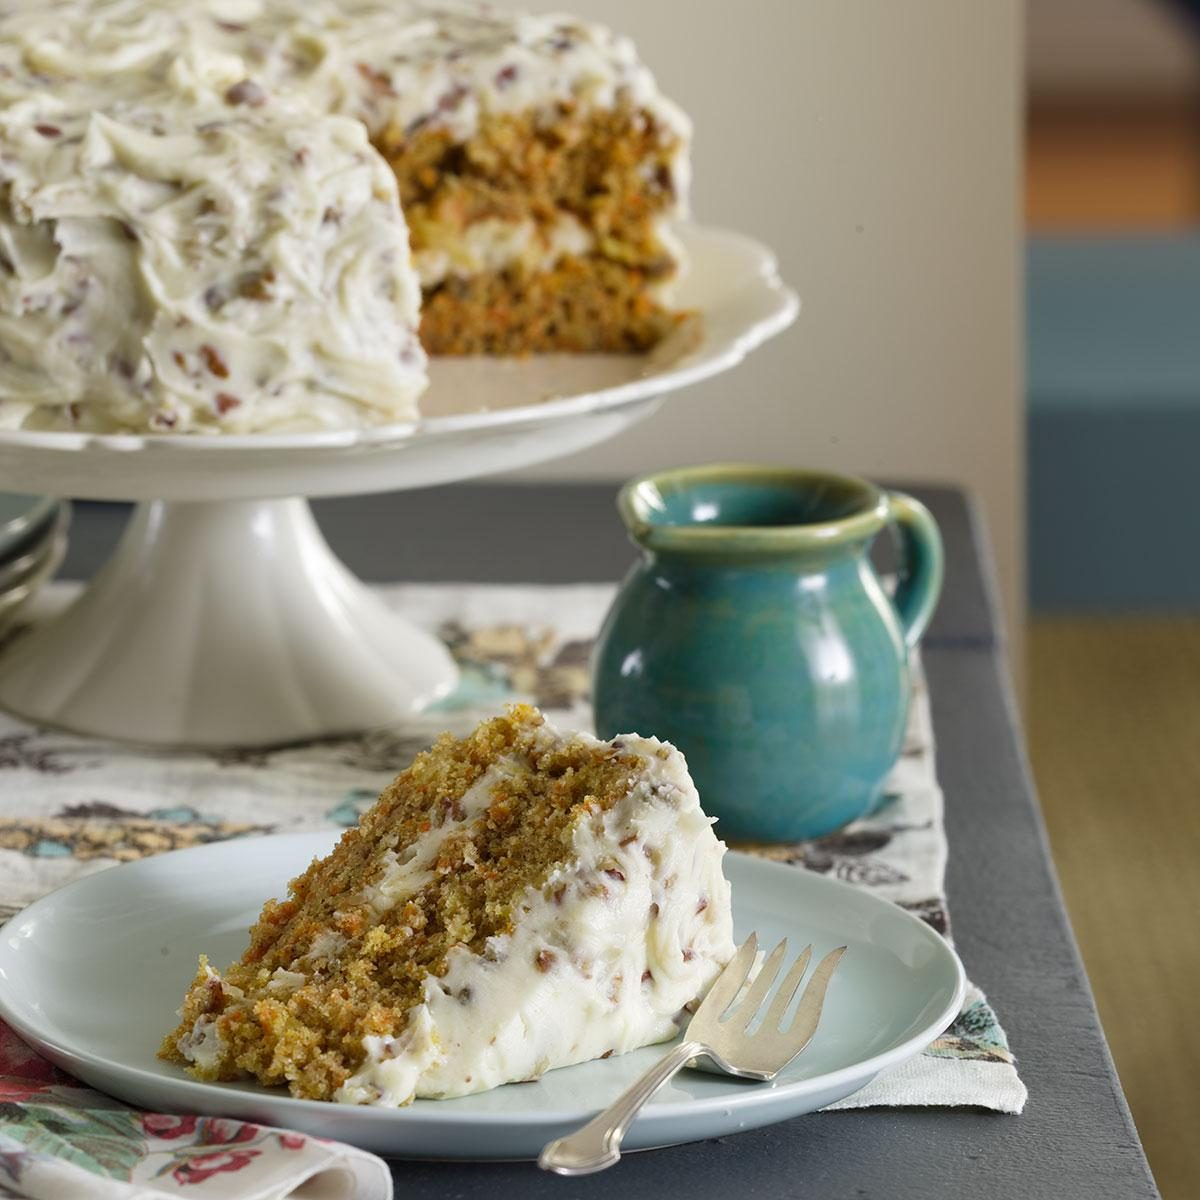 Old fashioned pecan cake recipe Butter Pecan Layer Cake Taste of Home